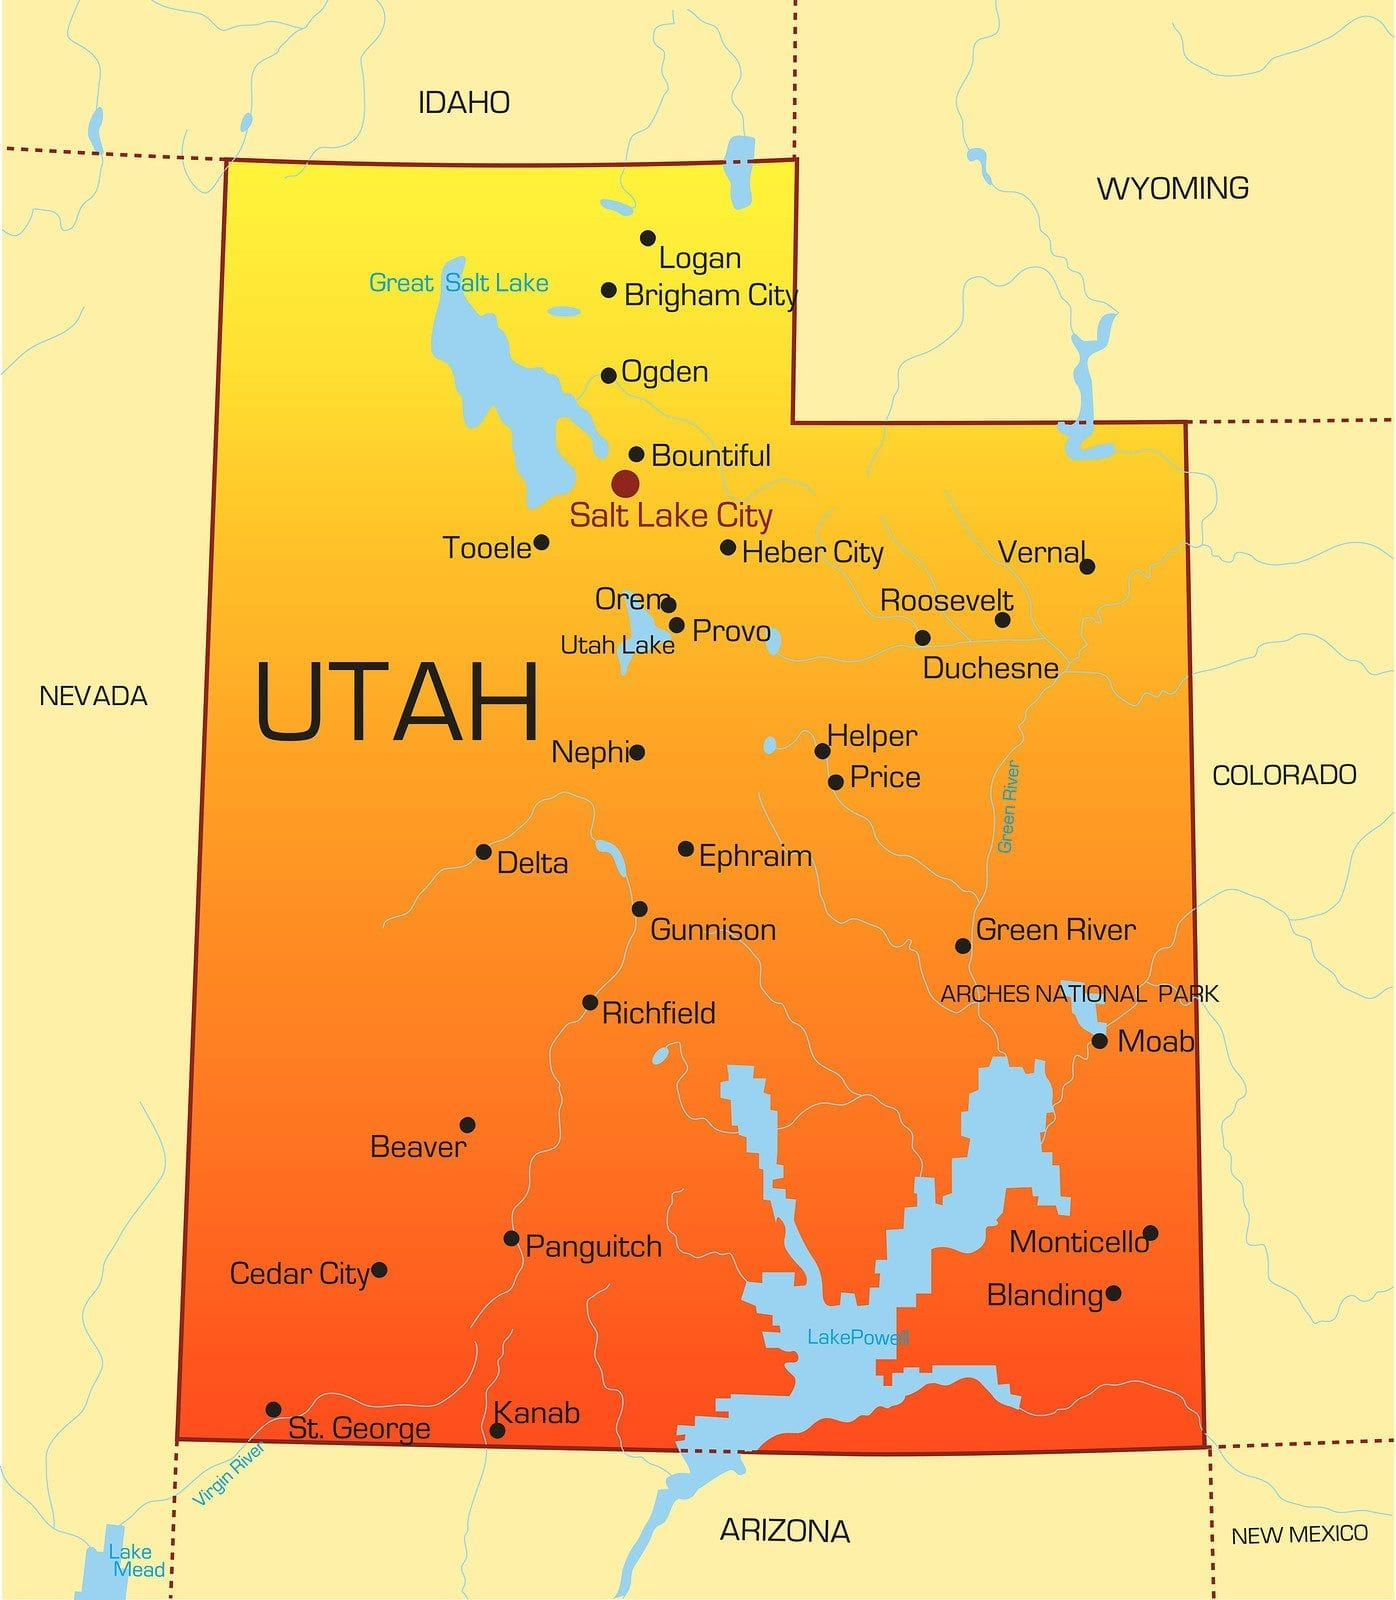 Utah lpn requirements and training programs a growing number of licensed practical nurses find steady and rewarding employment in the complex and specialized health care industry xflitez Gallery